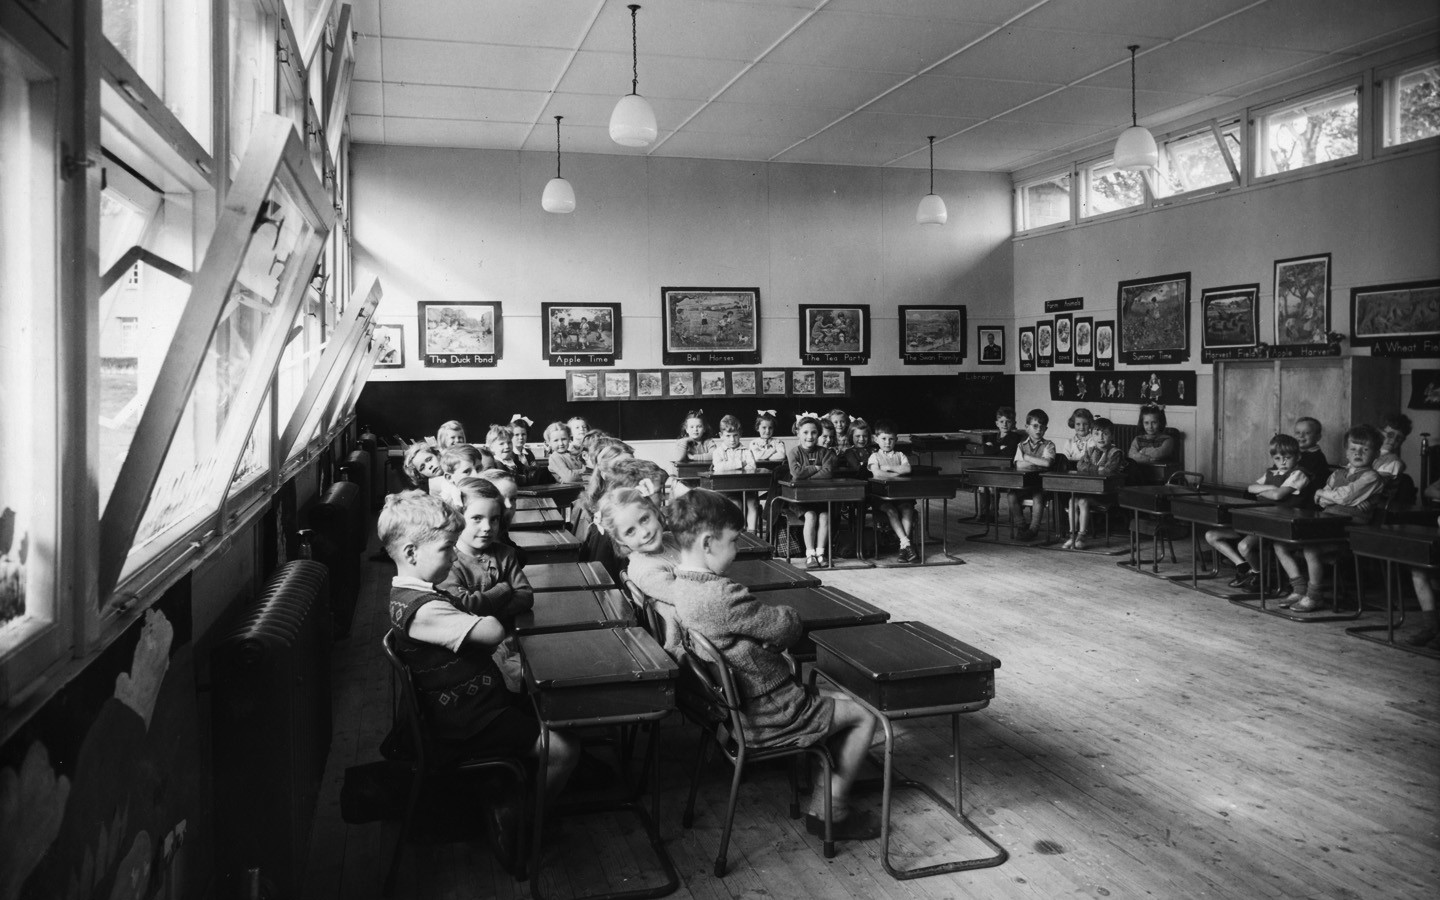 An old black and white photo of a class room where there are children sitting at their desks.